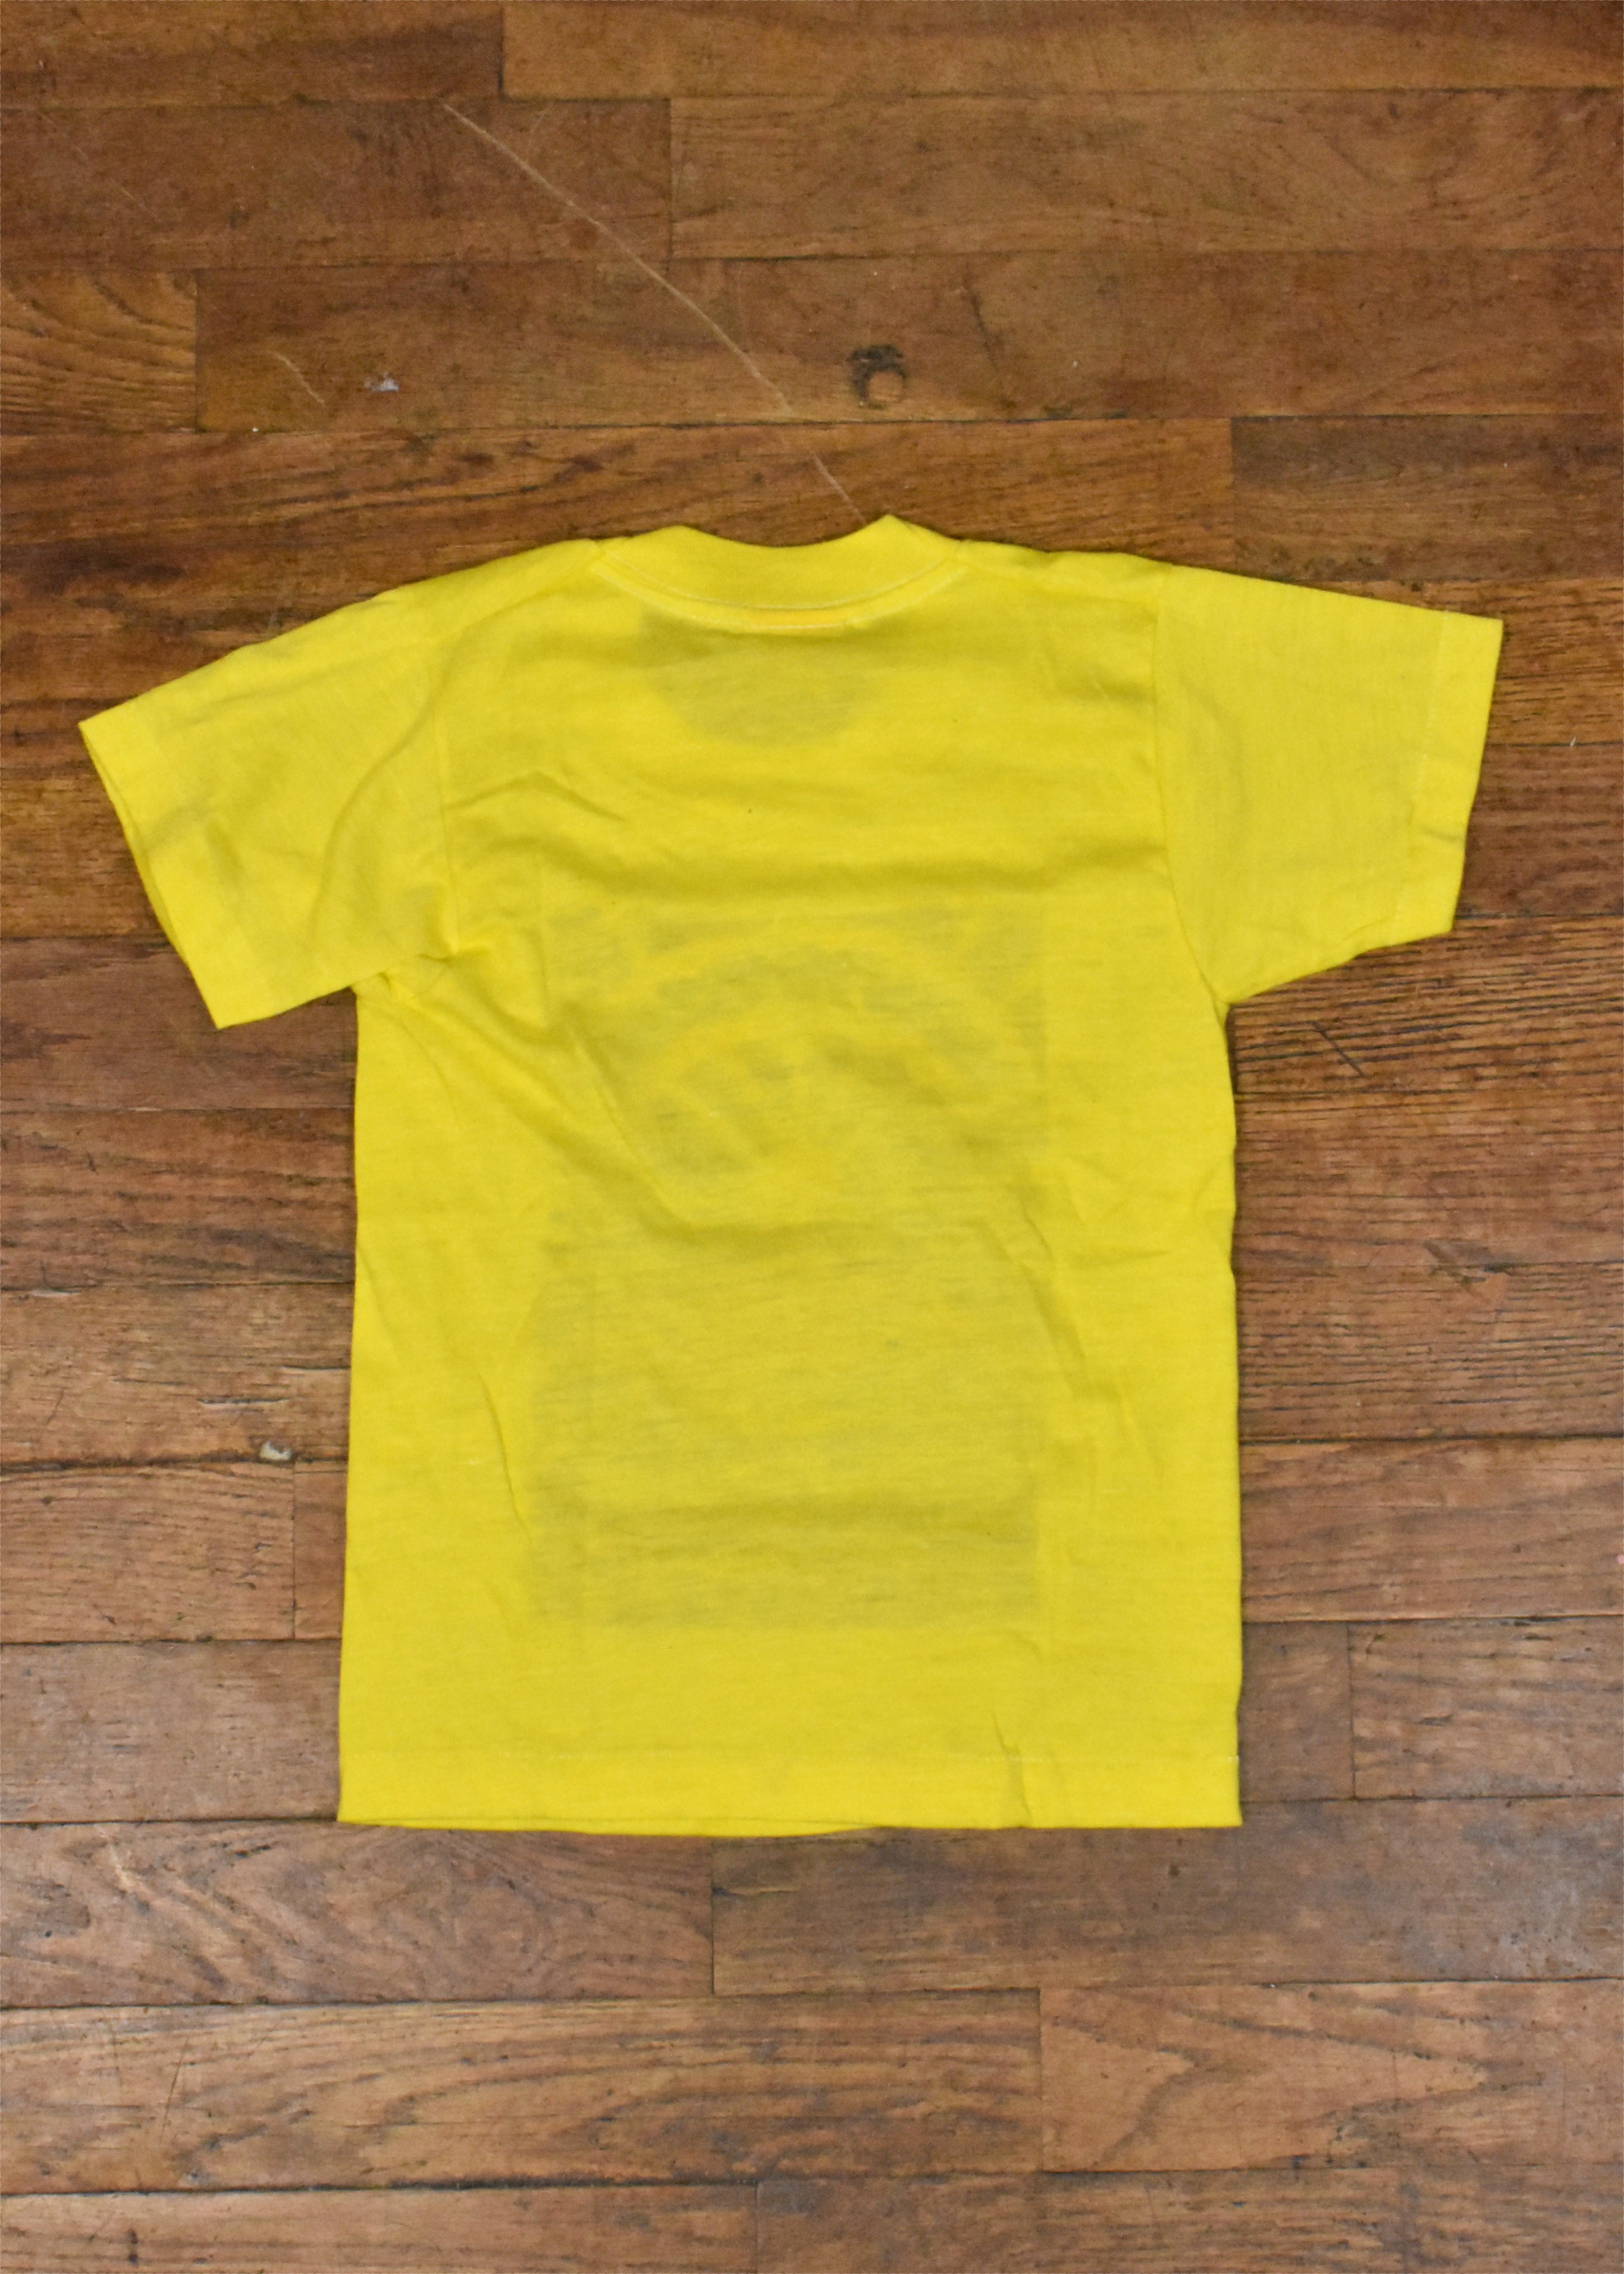 70's-80's Kids Yellow New Mexico Tierra Encantada T-Shirt